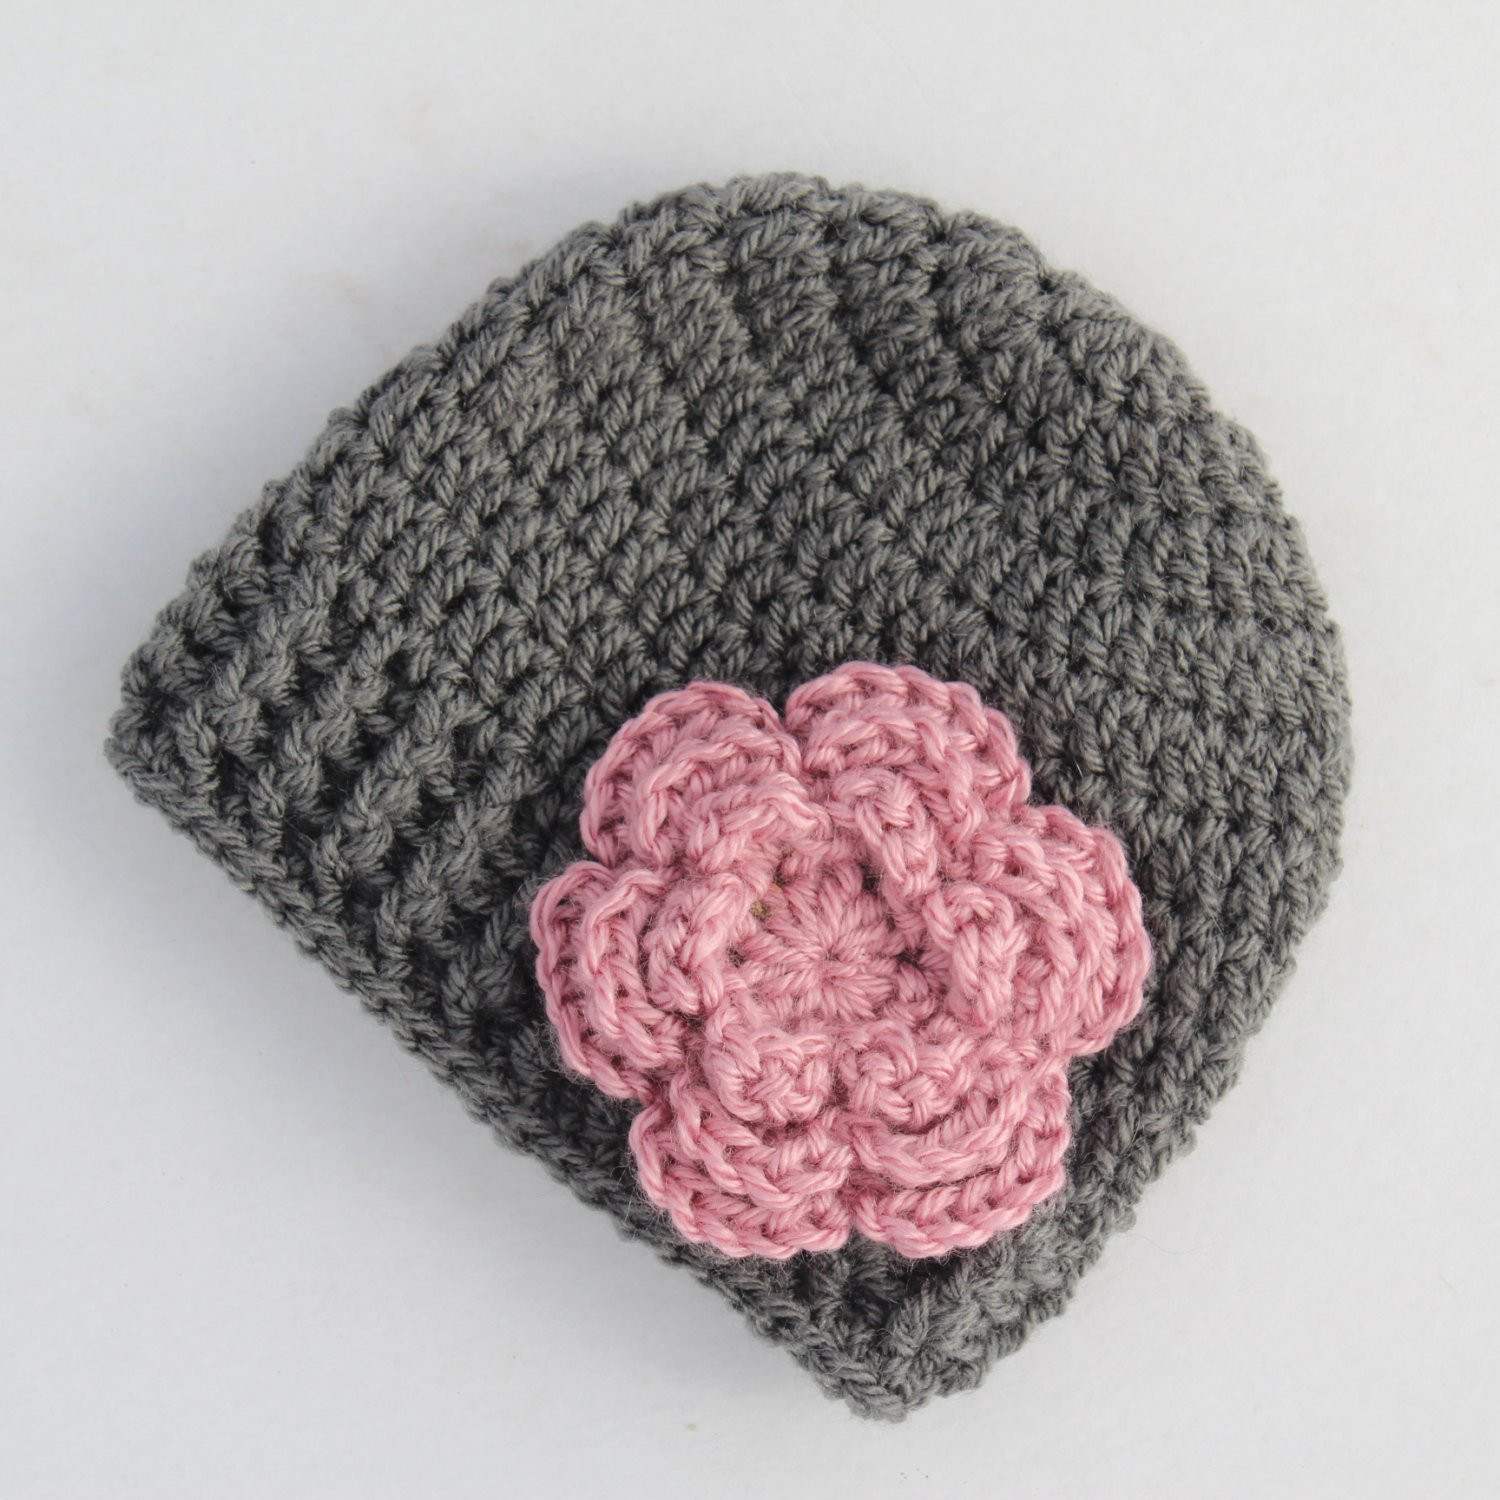 Crochet Girl Hat Fresh Baby Hat Crochet Baby Hat Baby Girl Hat Grey and Pink Girl Of Superb 47 Pics Crochet Girl Hat